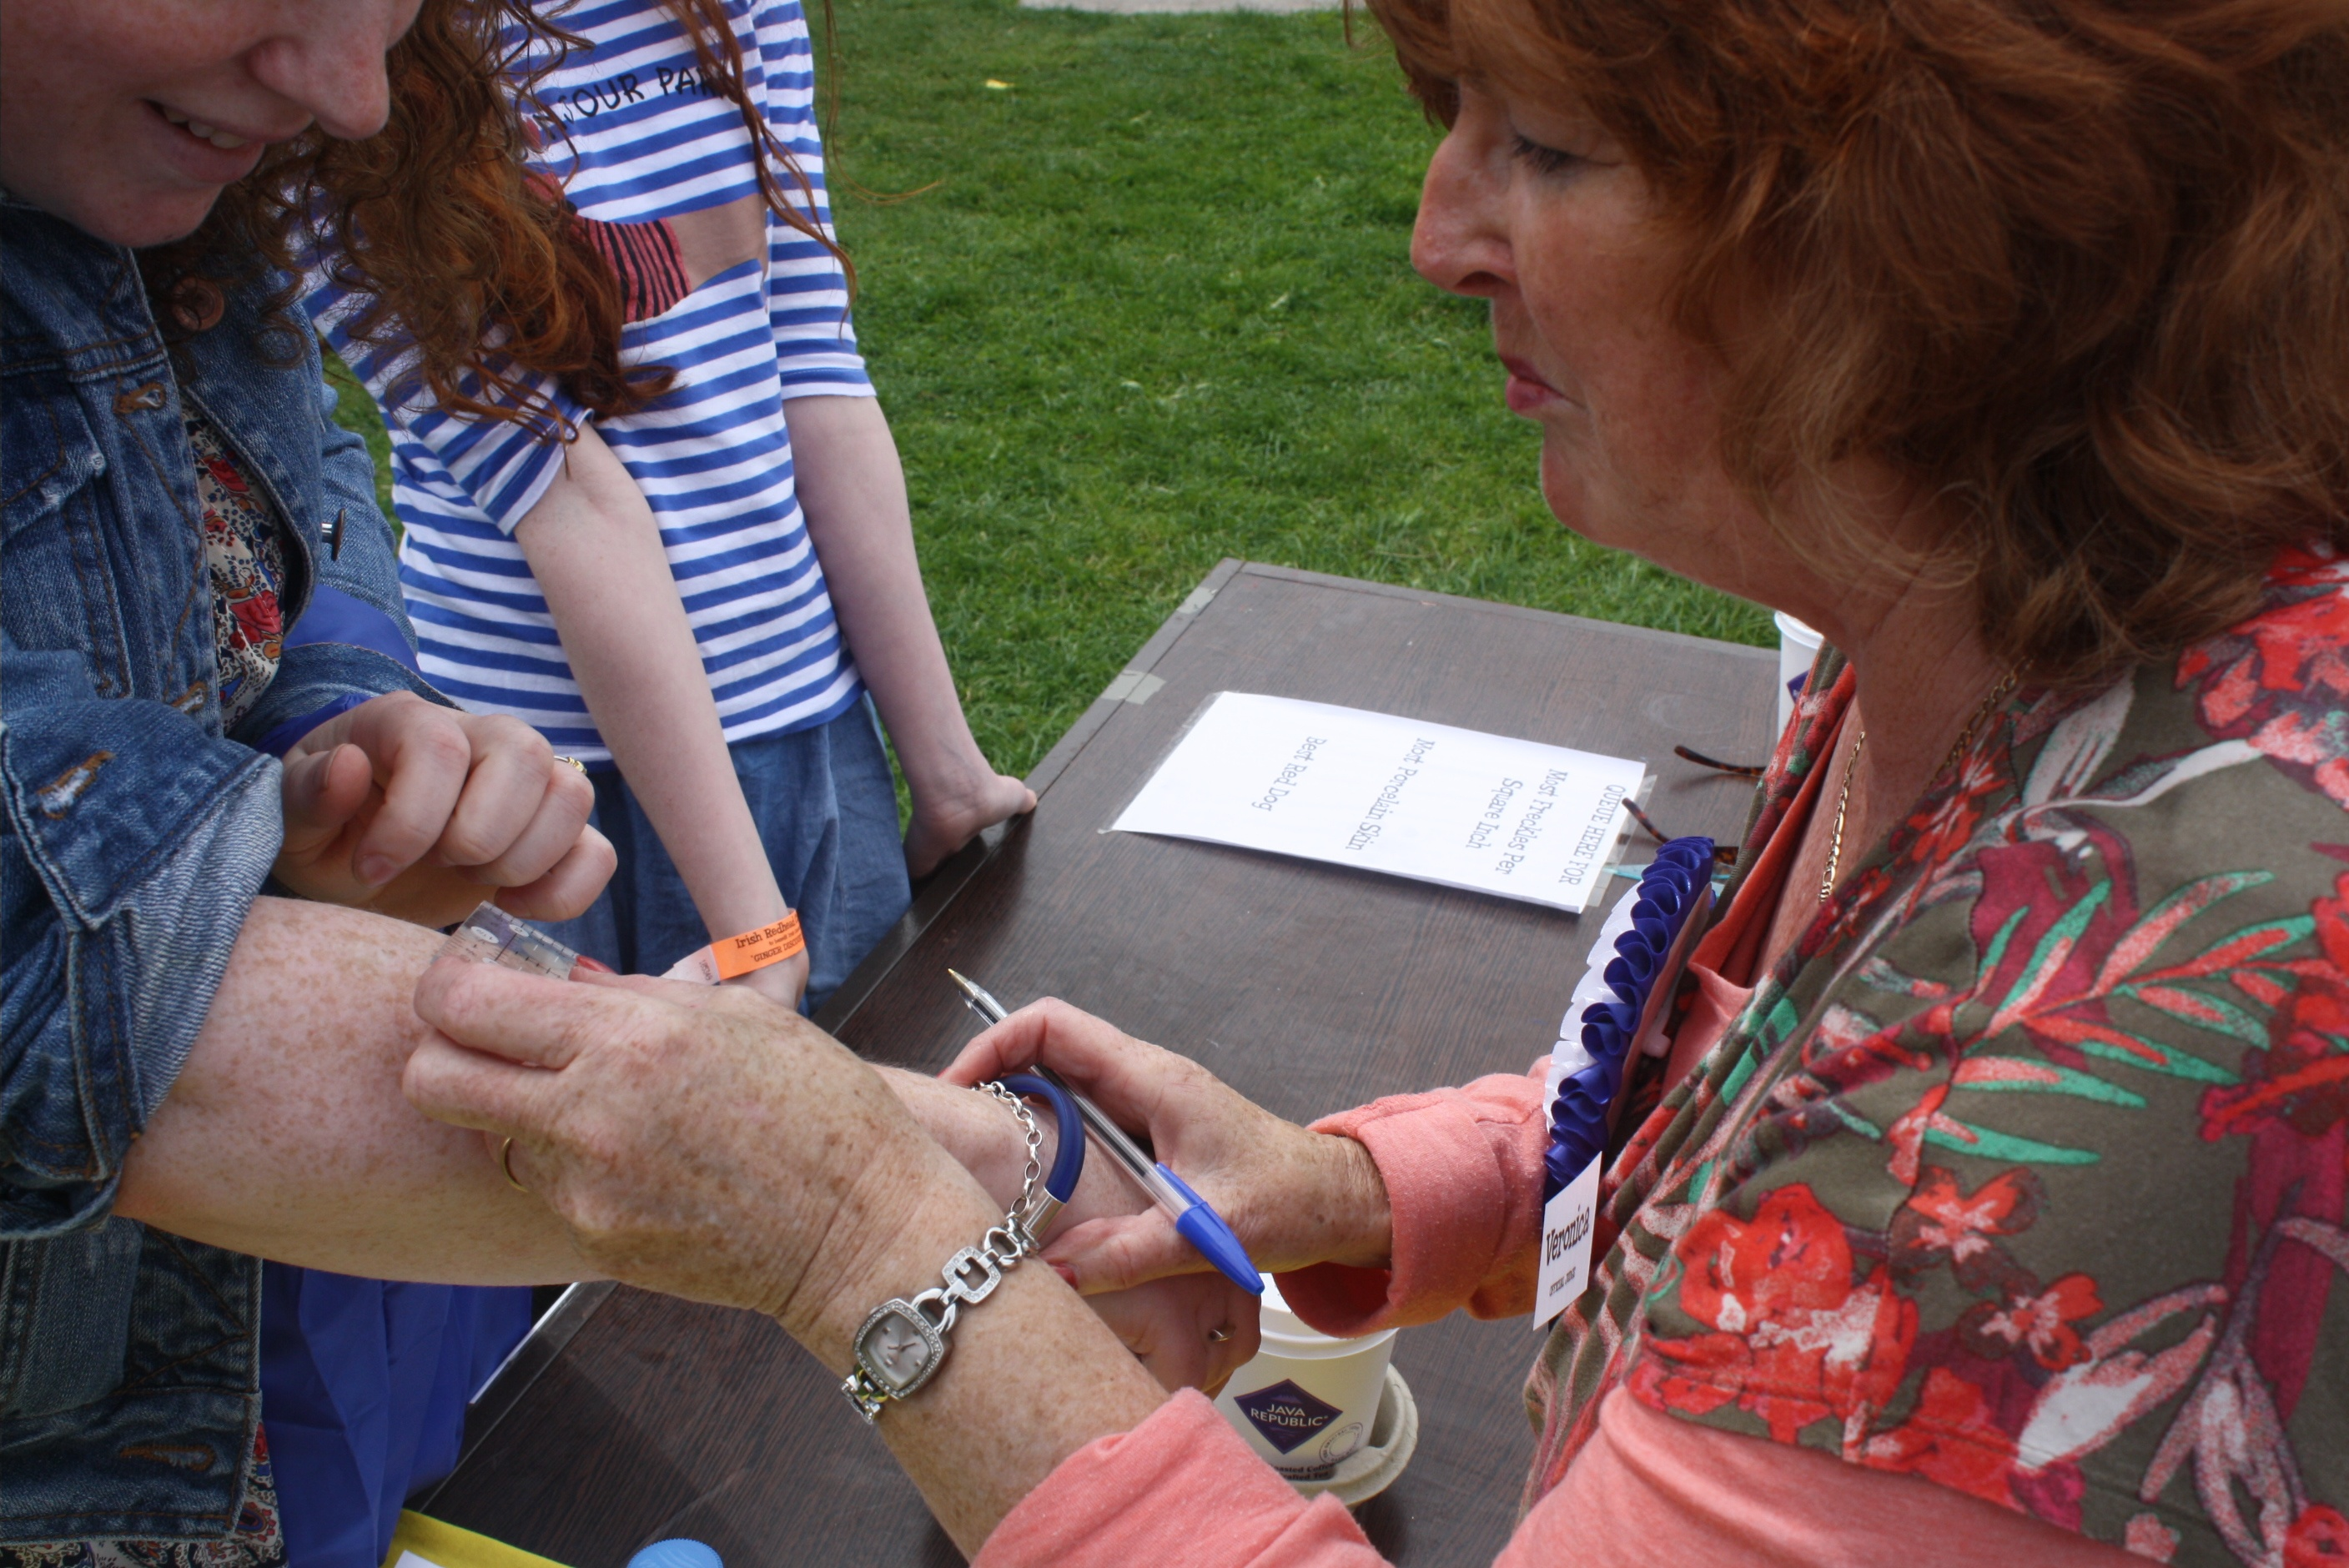 Red Head Convention 2015 - scientific freckle counting 2